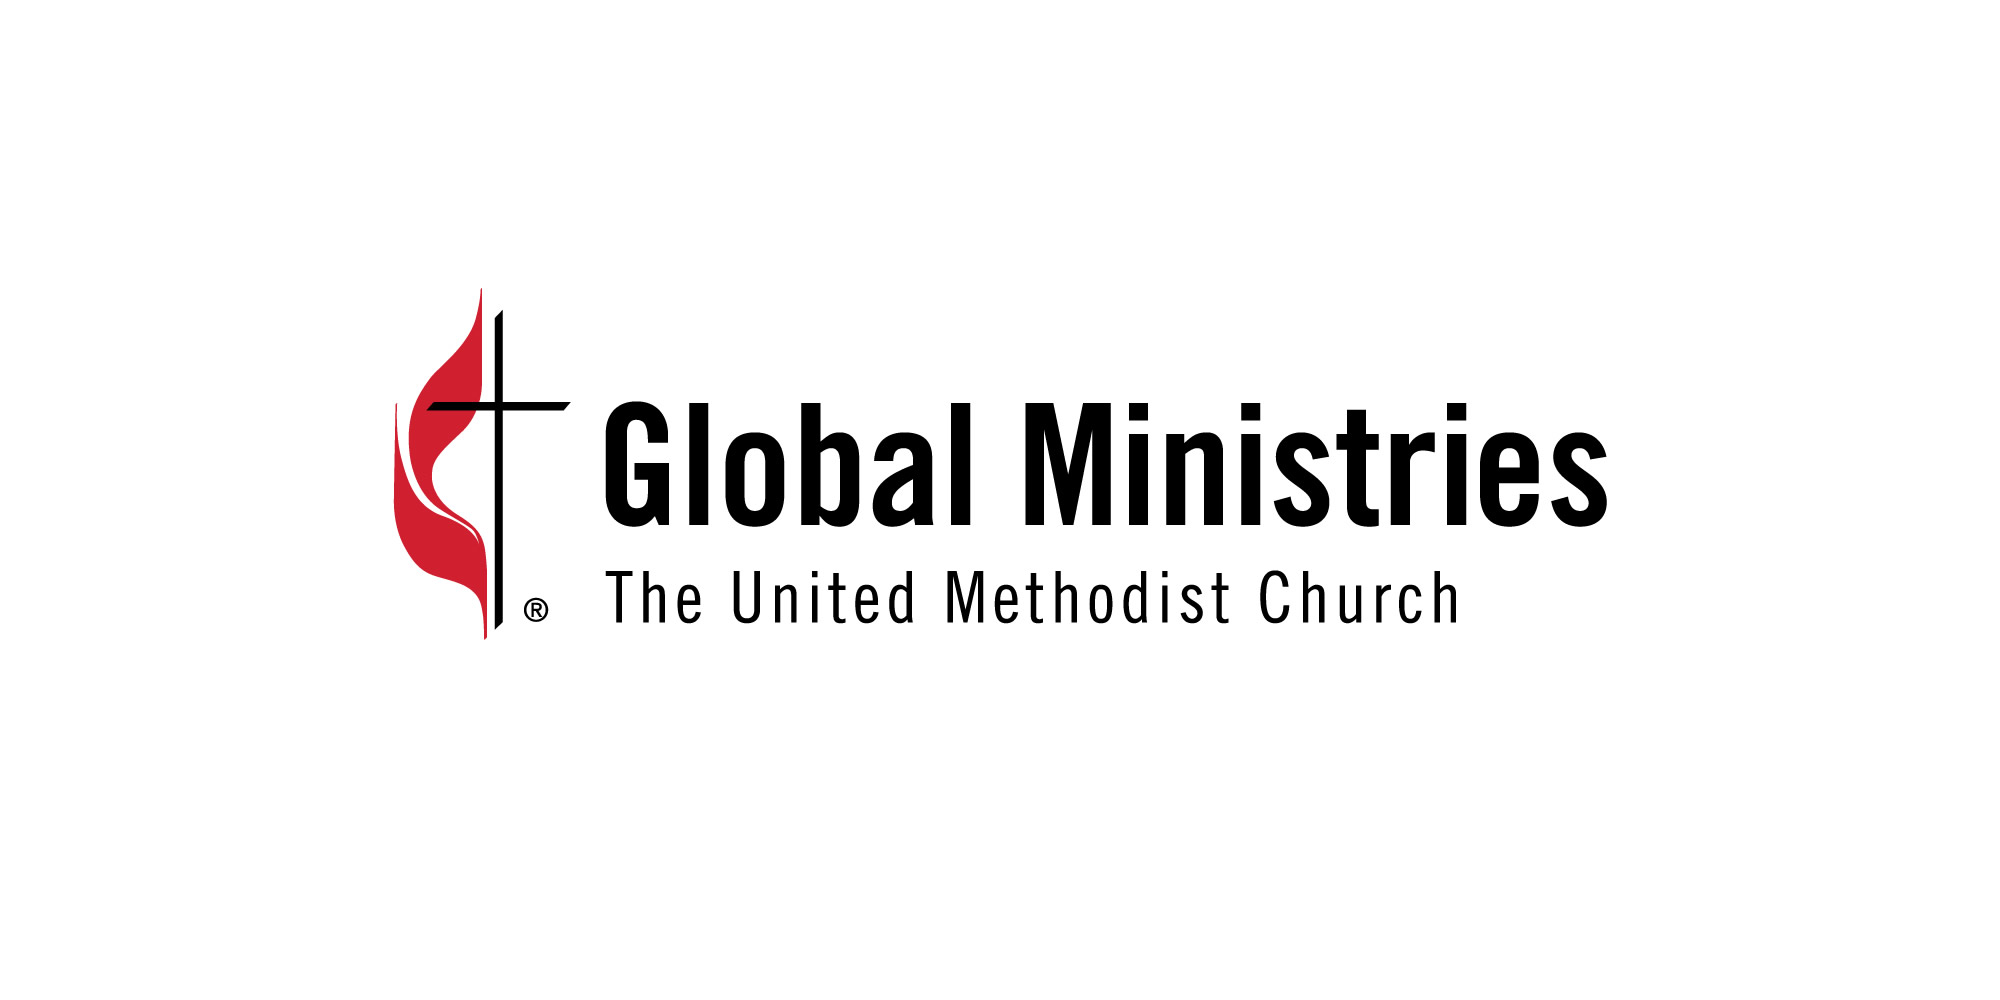 National Plan for Hispanic/Latino Ministry announces departure of Manuel Padilla and search for a new director